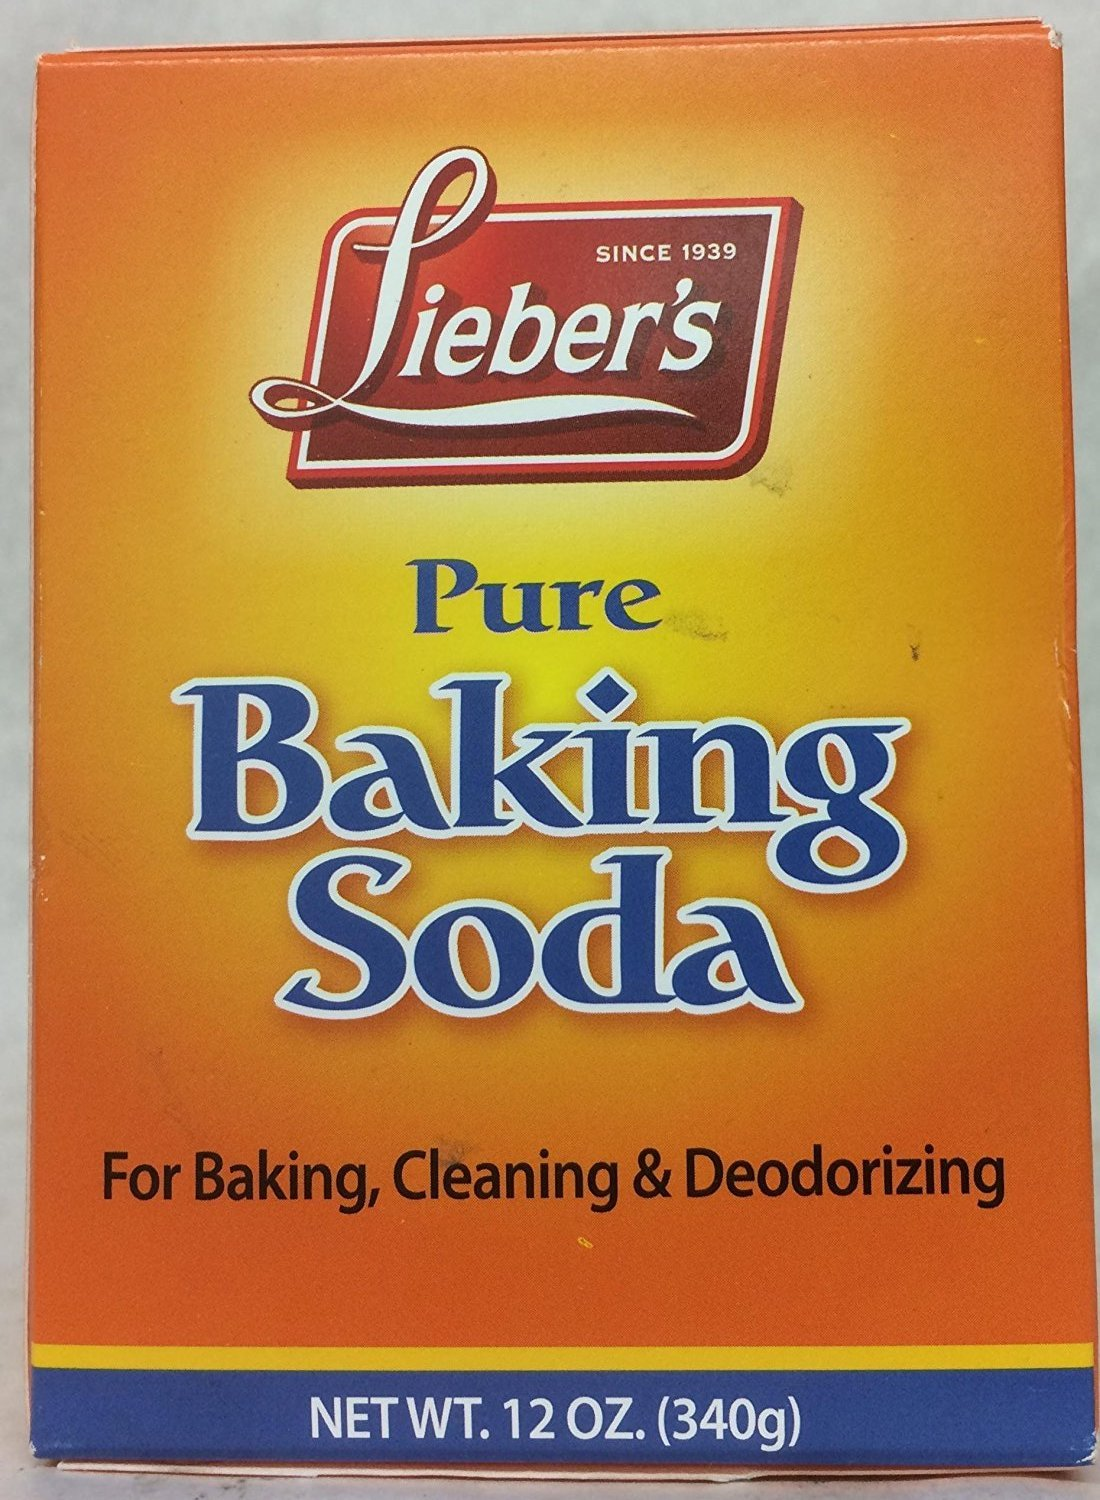 Lieber's Pure Baking Soda For Baking, Cleaning & Deodorizing 12 Oz. Pk Of 3.